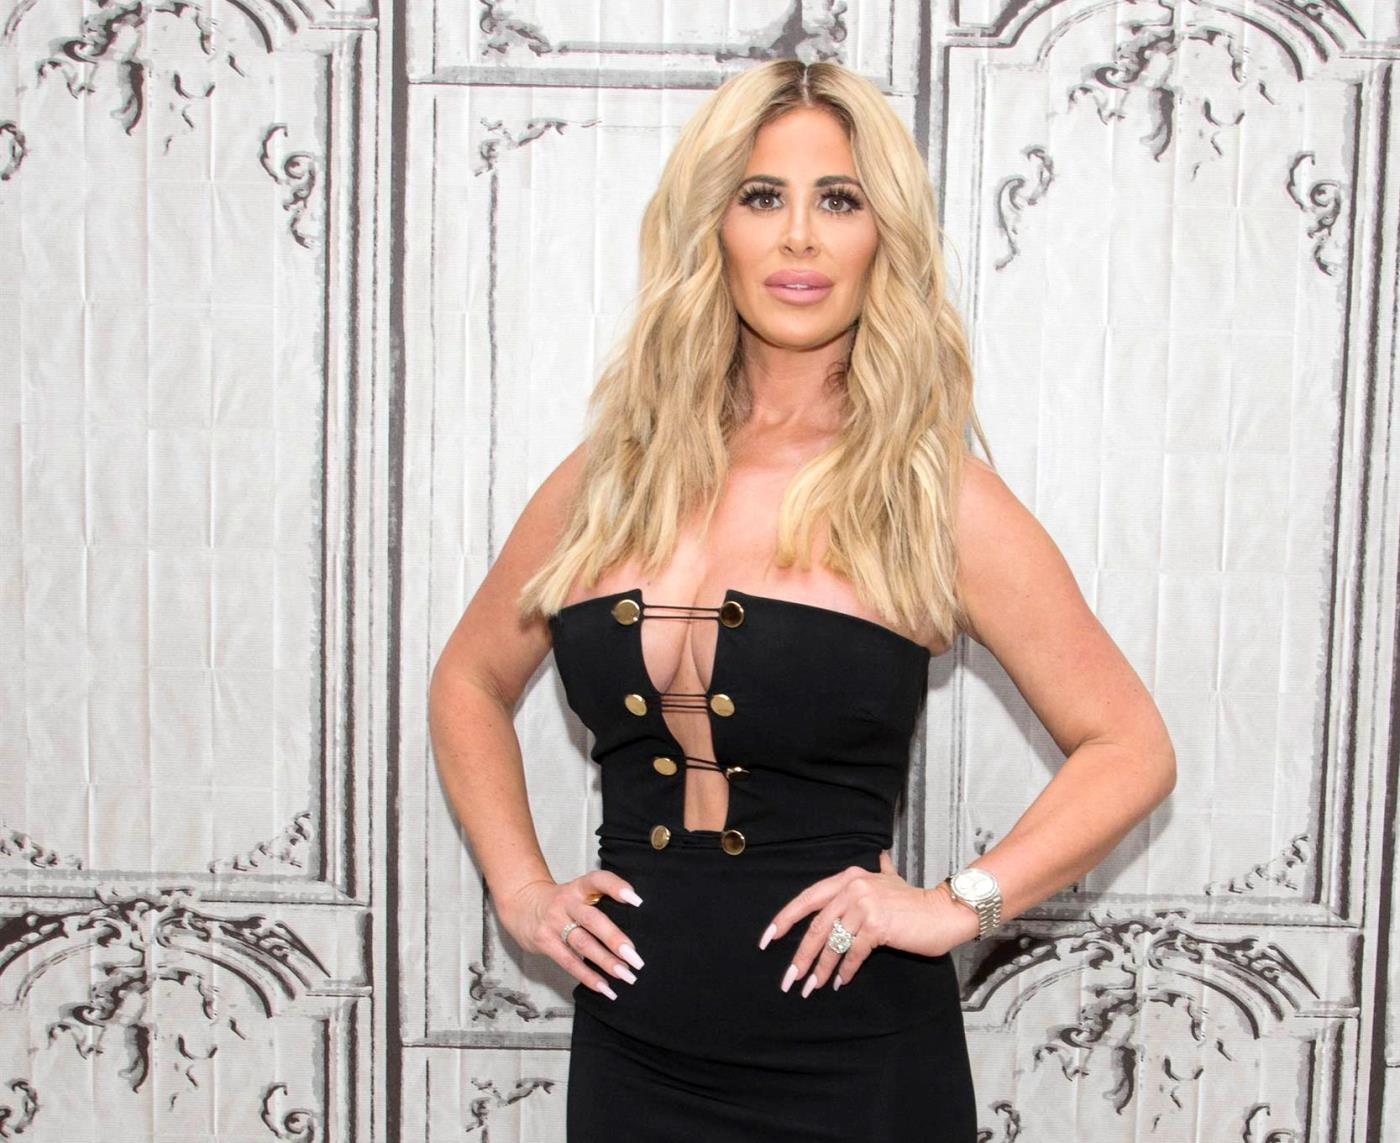 Kim Zolciak shares new makeup free selfie